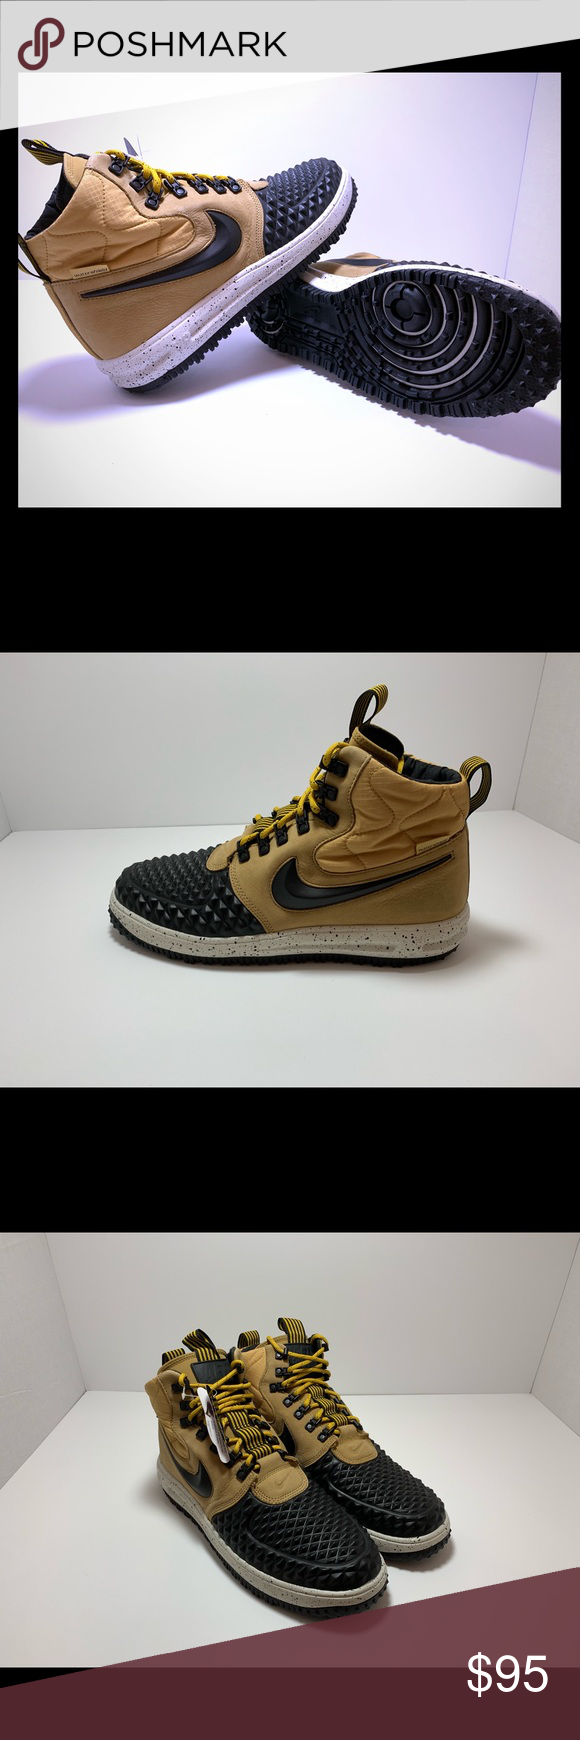 fast delivery beauty buy online Nike LF1 Duckboot 17- New Sizes 10.5 & 11.5 New with Box **FAST ...